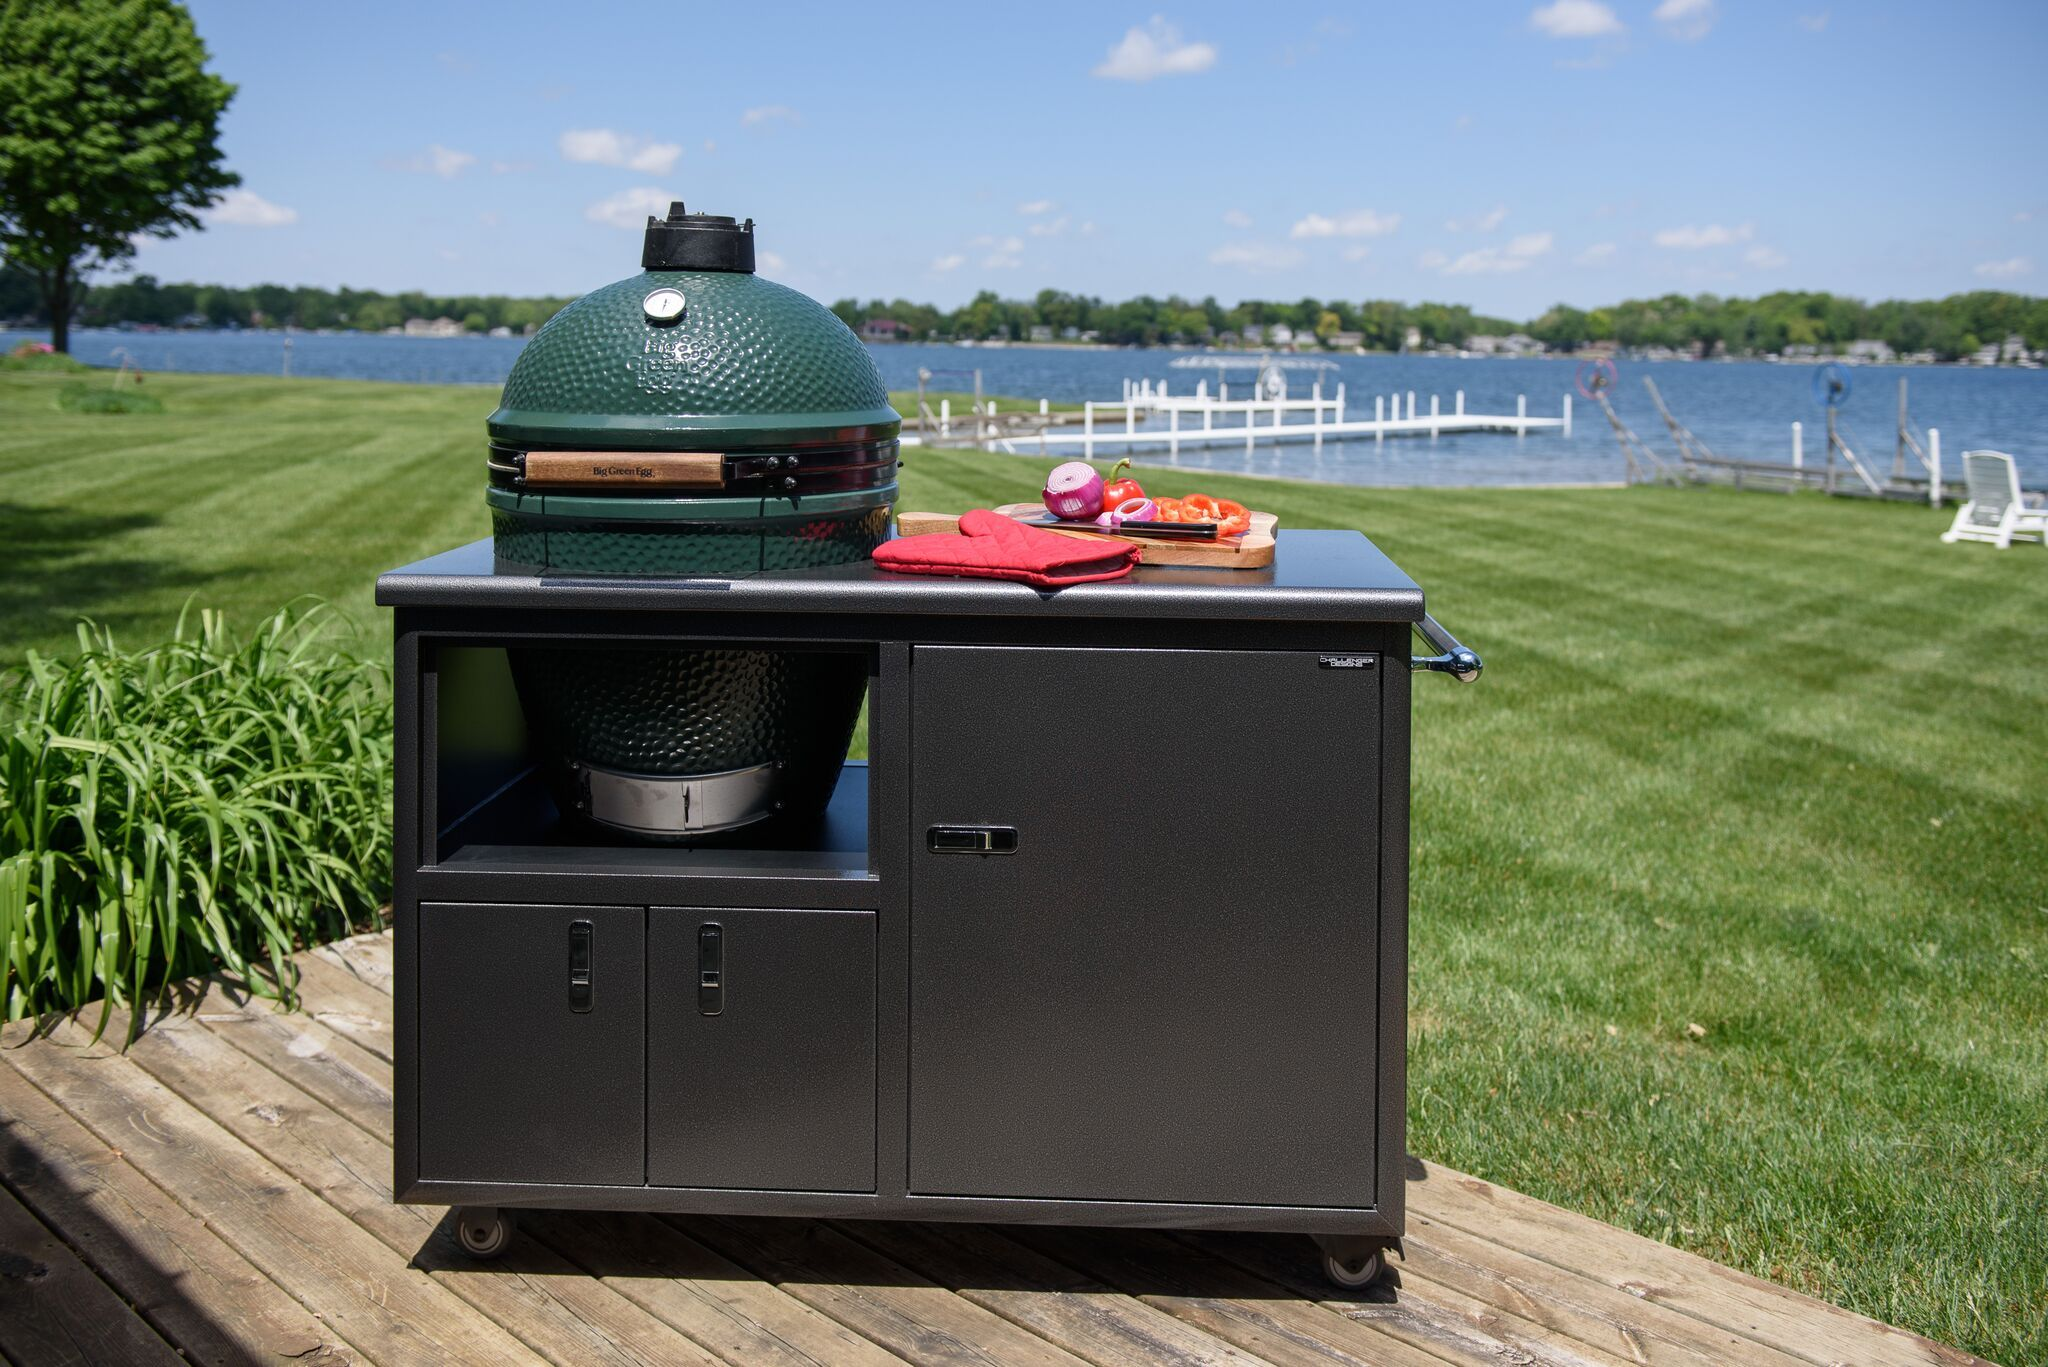 Pin By Challenger Designs Llc On Weatherproof Grill Carts By Challenger Designs Kamado Grill Recipes Ceramic Grill Kamado Grill